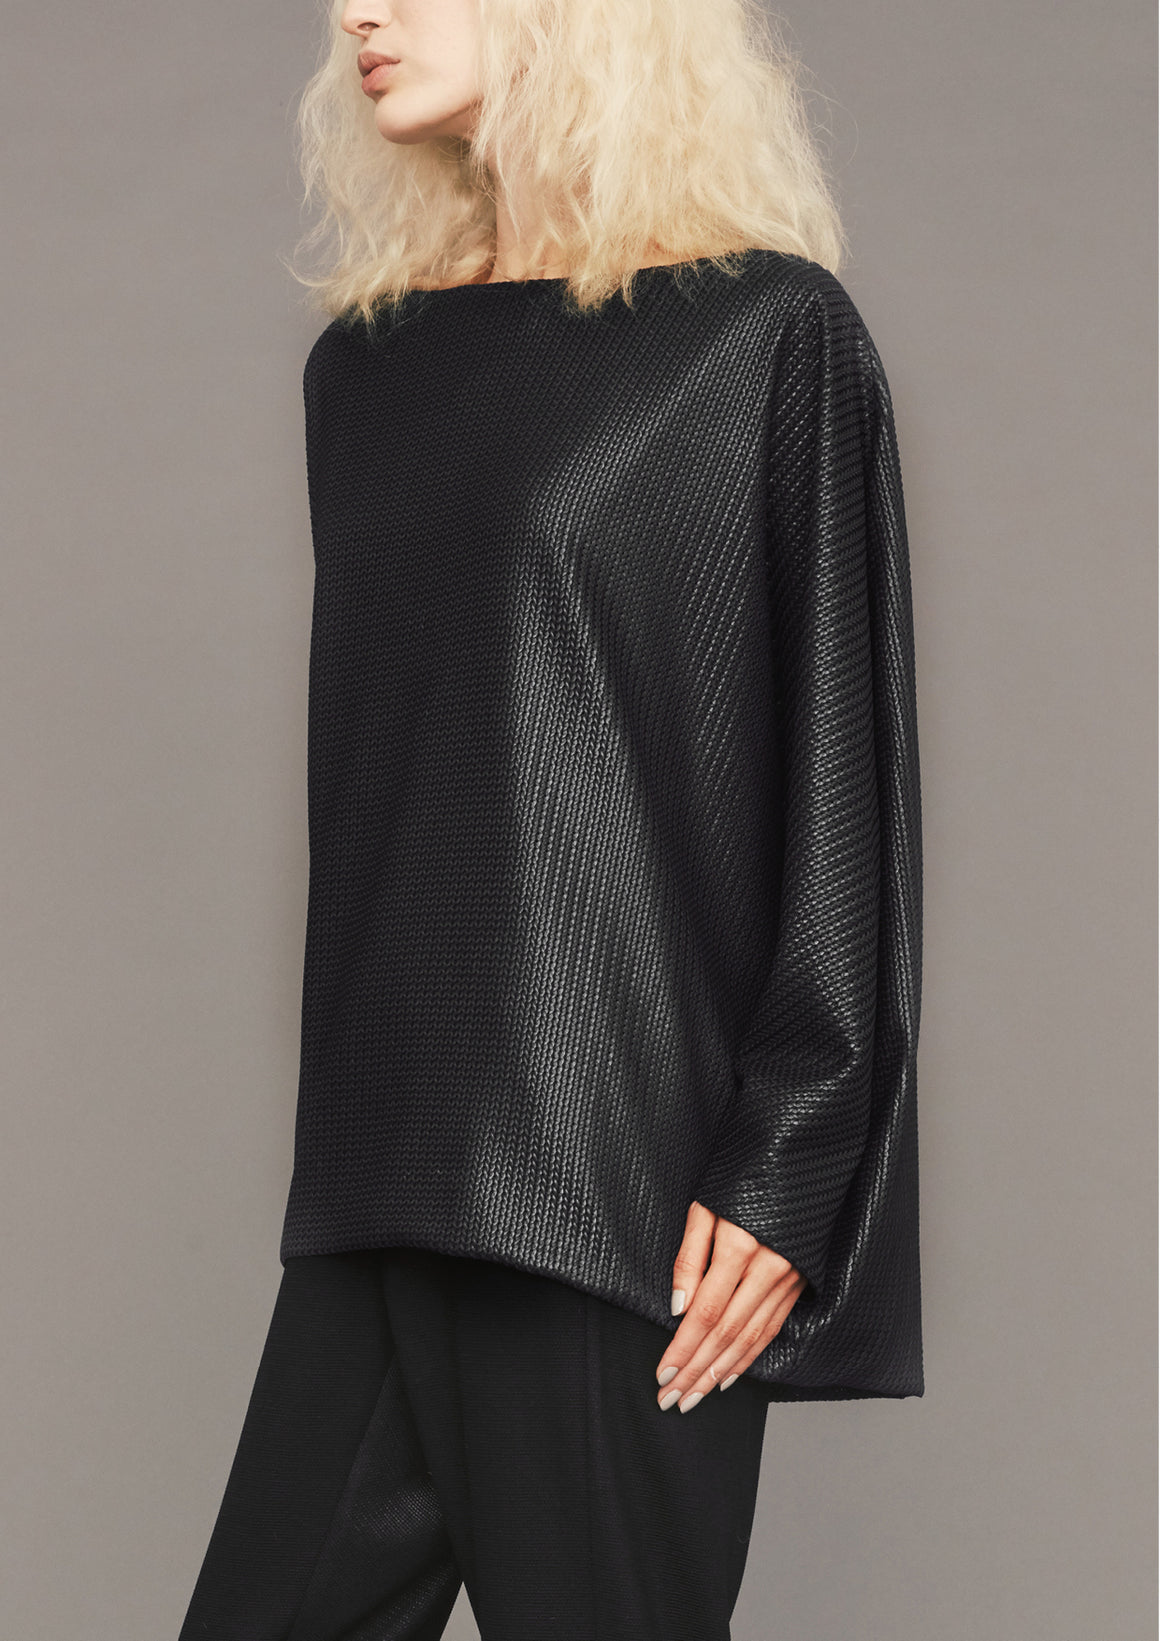 SWEATER POCKETS - FANCY TRIACETATE TECK KNIT black